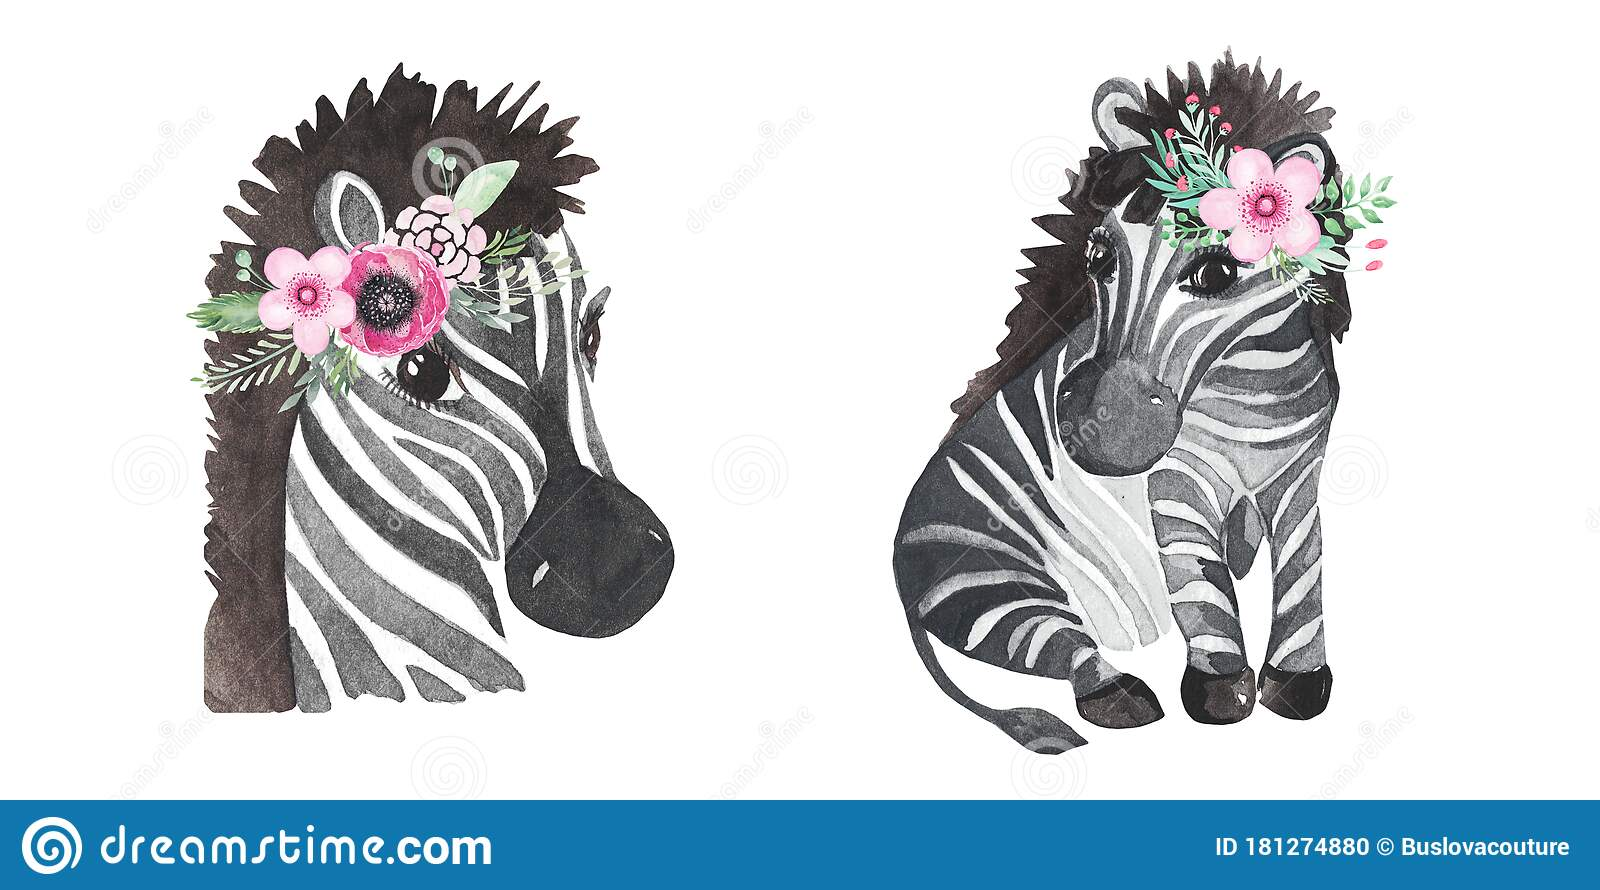 244 Cute Animals Clipart Photos Free Royalty Free Stock Photos From Dreamstime